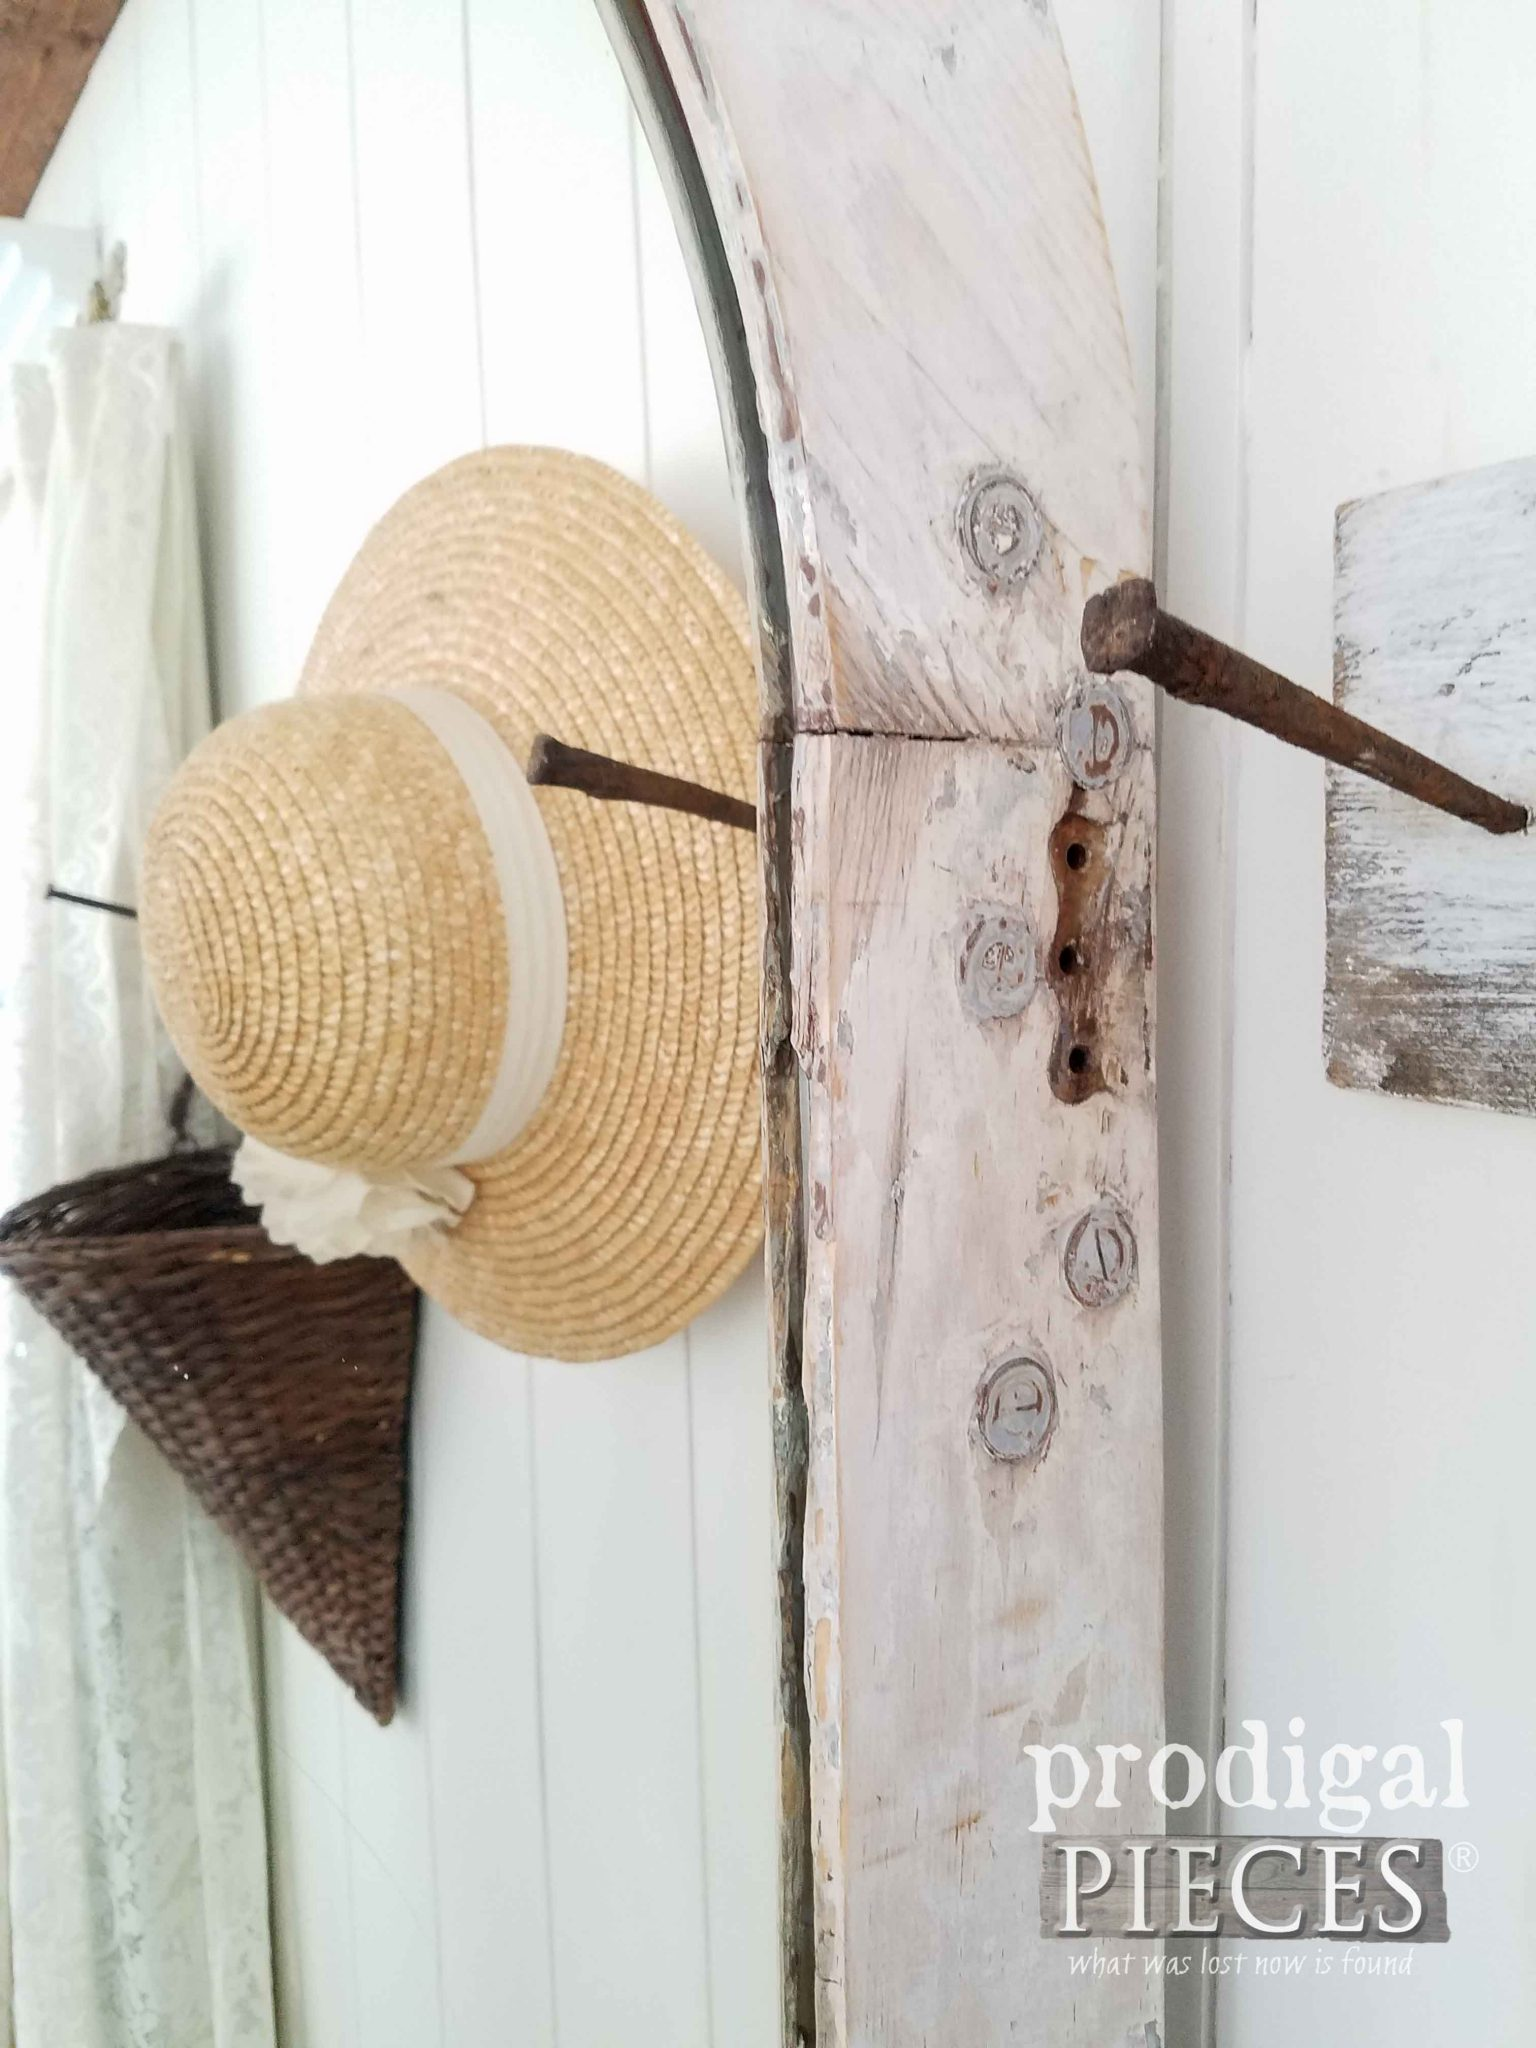 Old holes and chippy goodness on repurposed door mirror by Prodigal Pieces | prodigalpieces.com